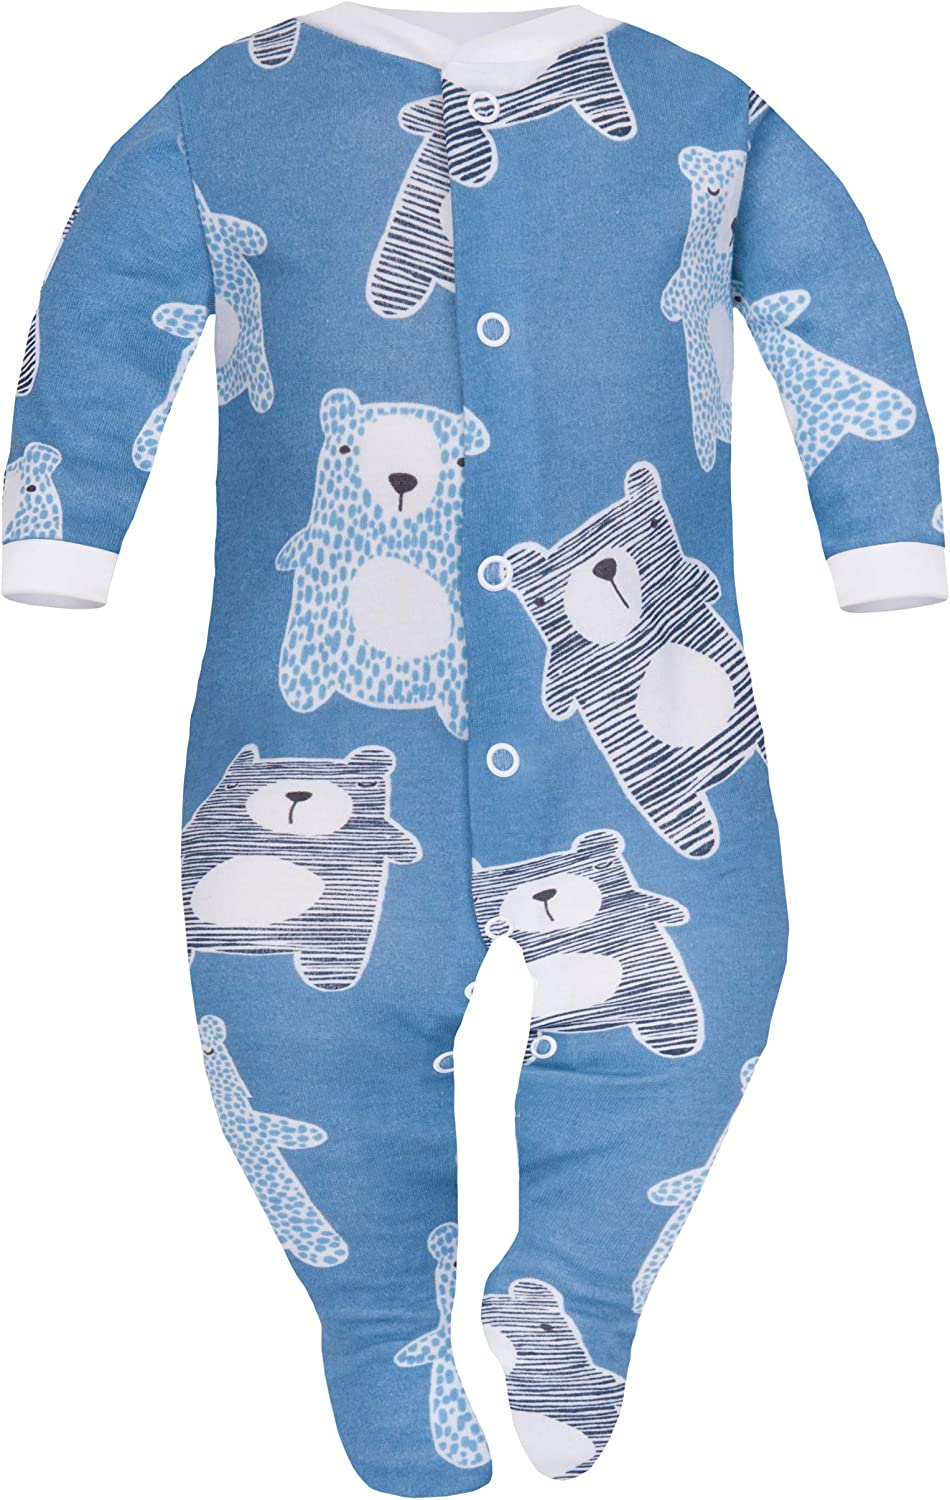 SIBINULO Baby Boys Baby Girls Sleepsuit with Feet Mix Pack of 3 Sizes 0-9 Months